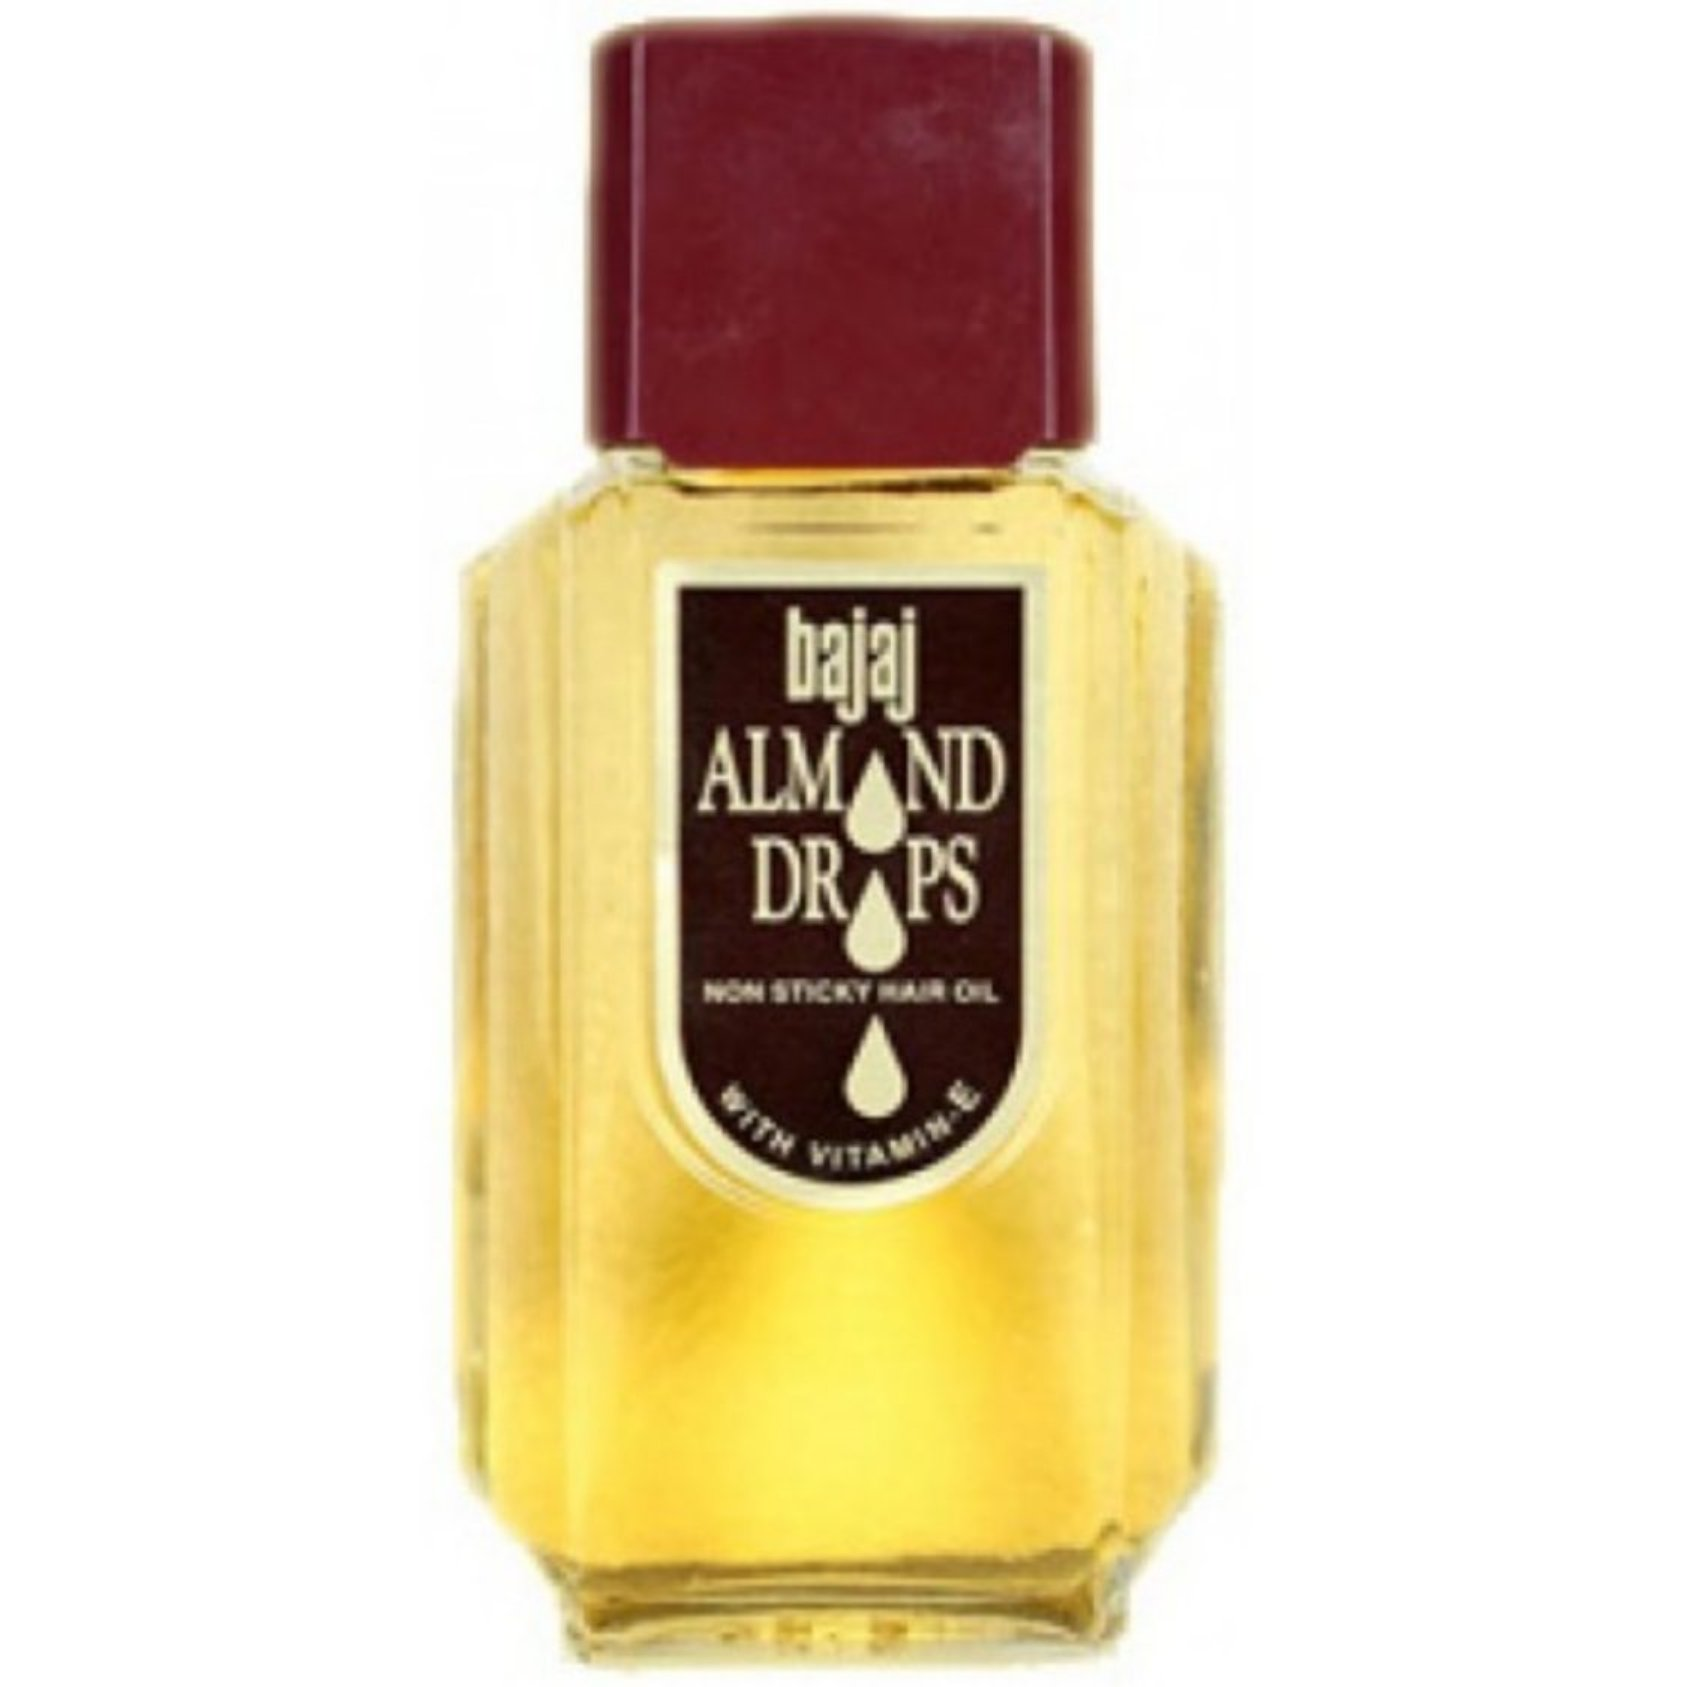 Bajaj Almond Drops Oil